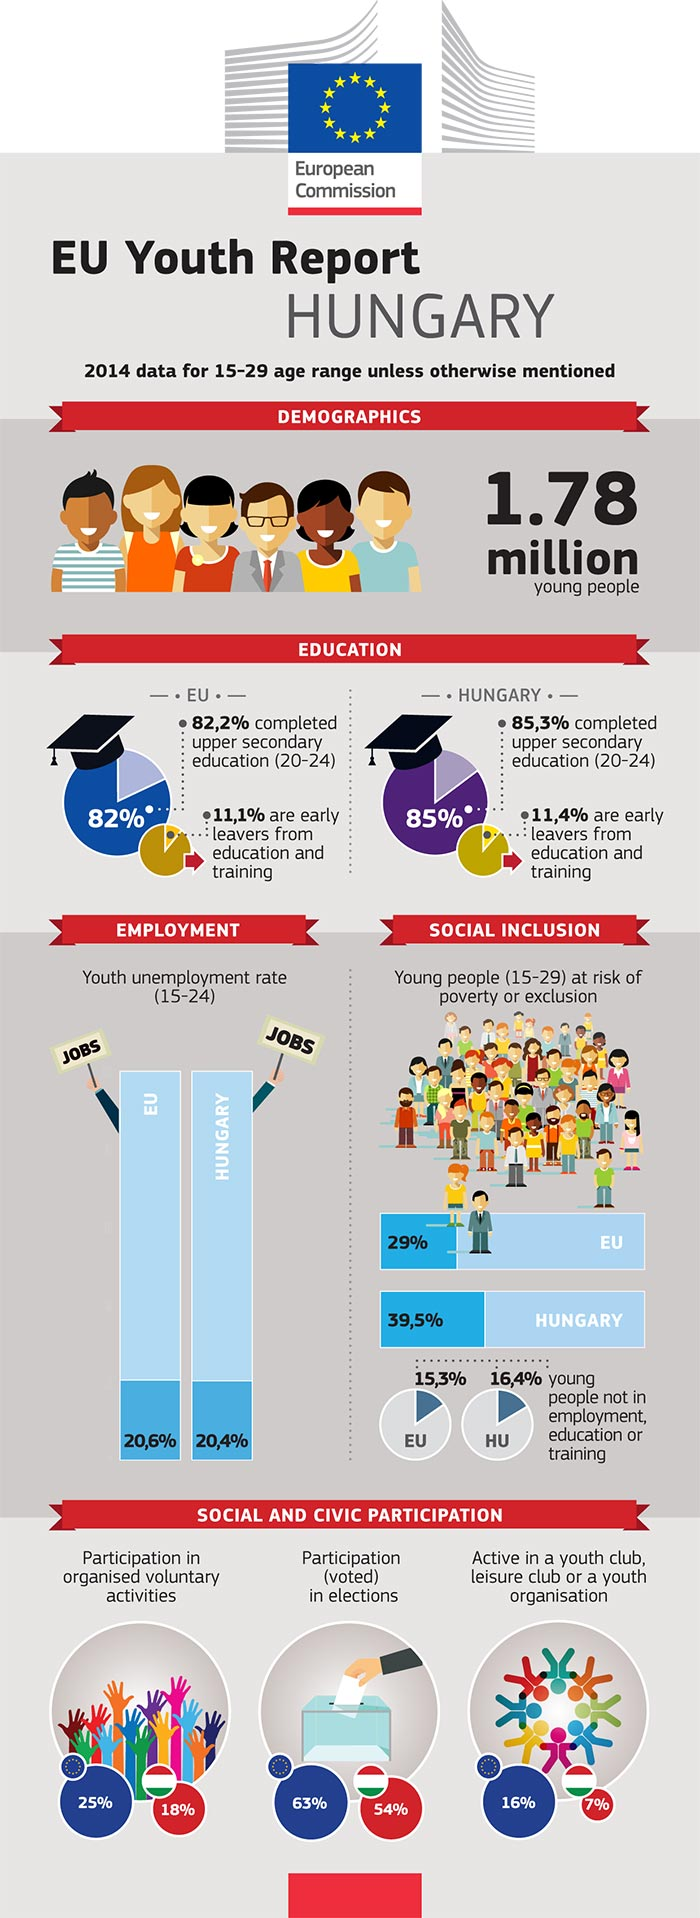 EU Youth Report infographic: Hungary